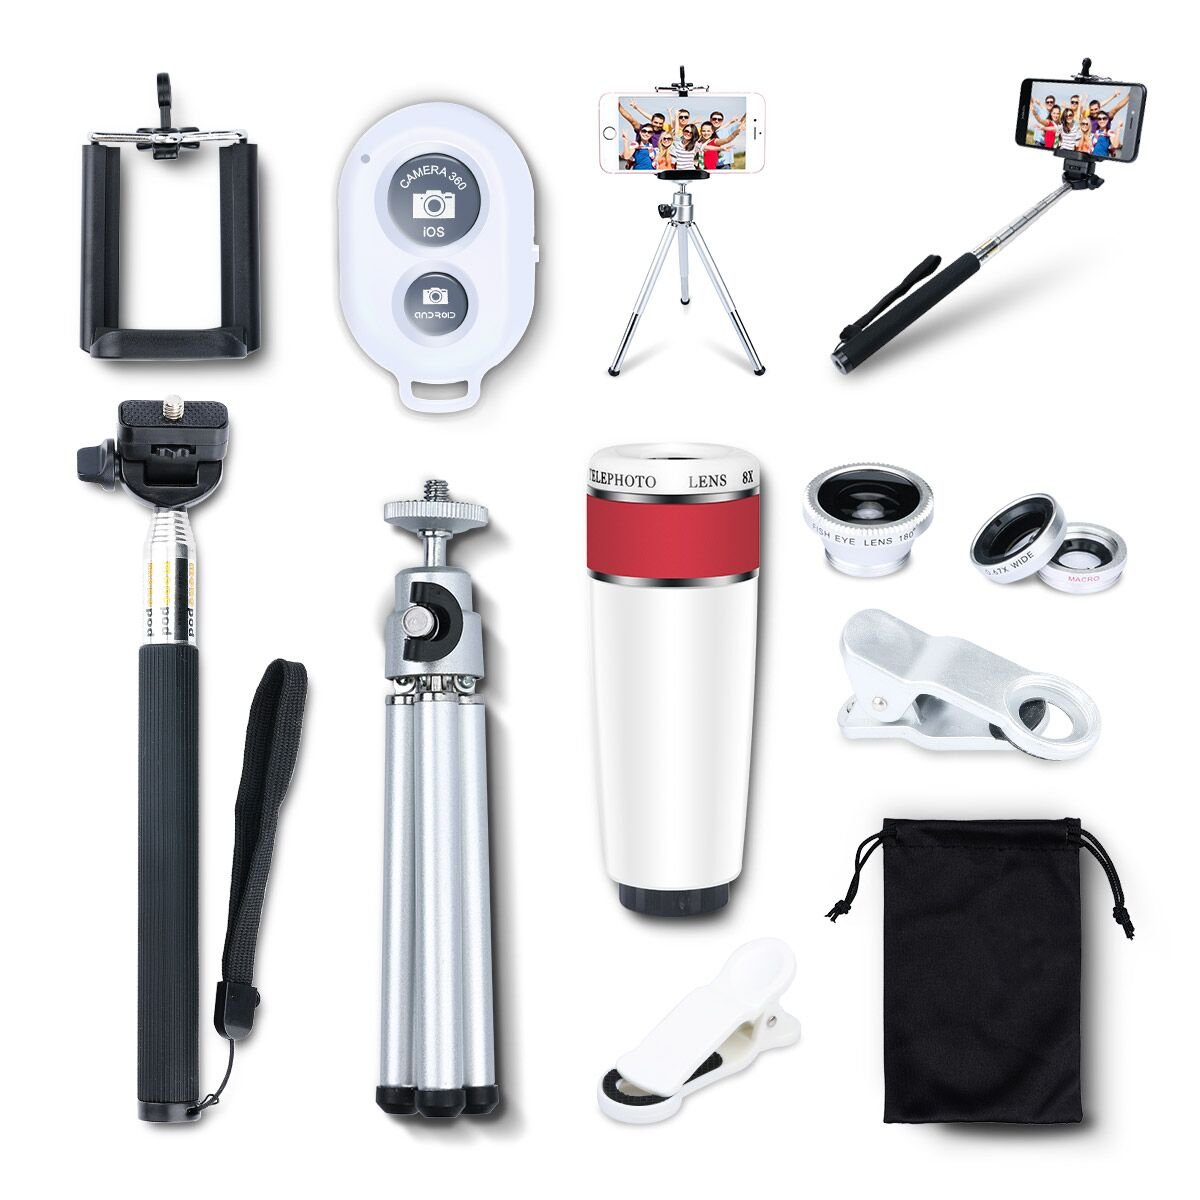 AFAITH 10-in-1 Camera Lens Kit 8x Telephoto Telescope Lens + Fish Eye Lens + Wide Angle + Macro Lens + Selfie Stick Monopod + Bluetooth Remote Control + Mini Tripod For iPhone 4S 5 5C 5S 6 6 Plus Samsung Galaxy S3 S4 S5 S6 Edge Note 2 3 4 HTC Nokia a PA051